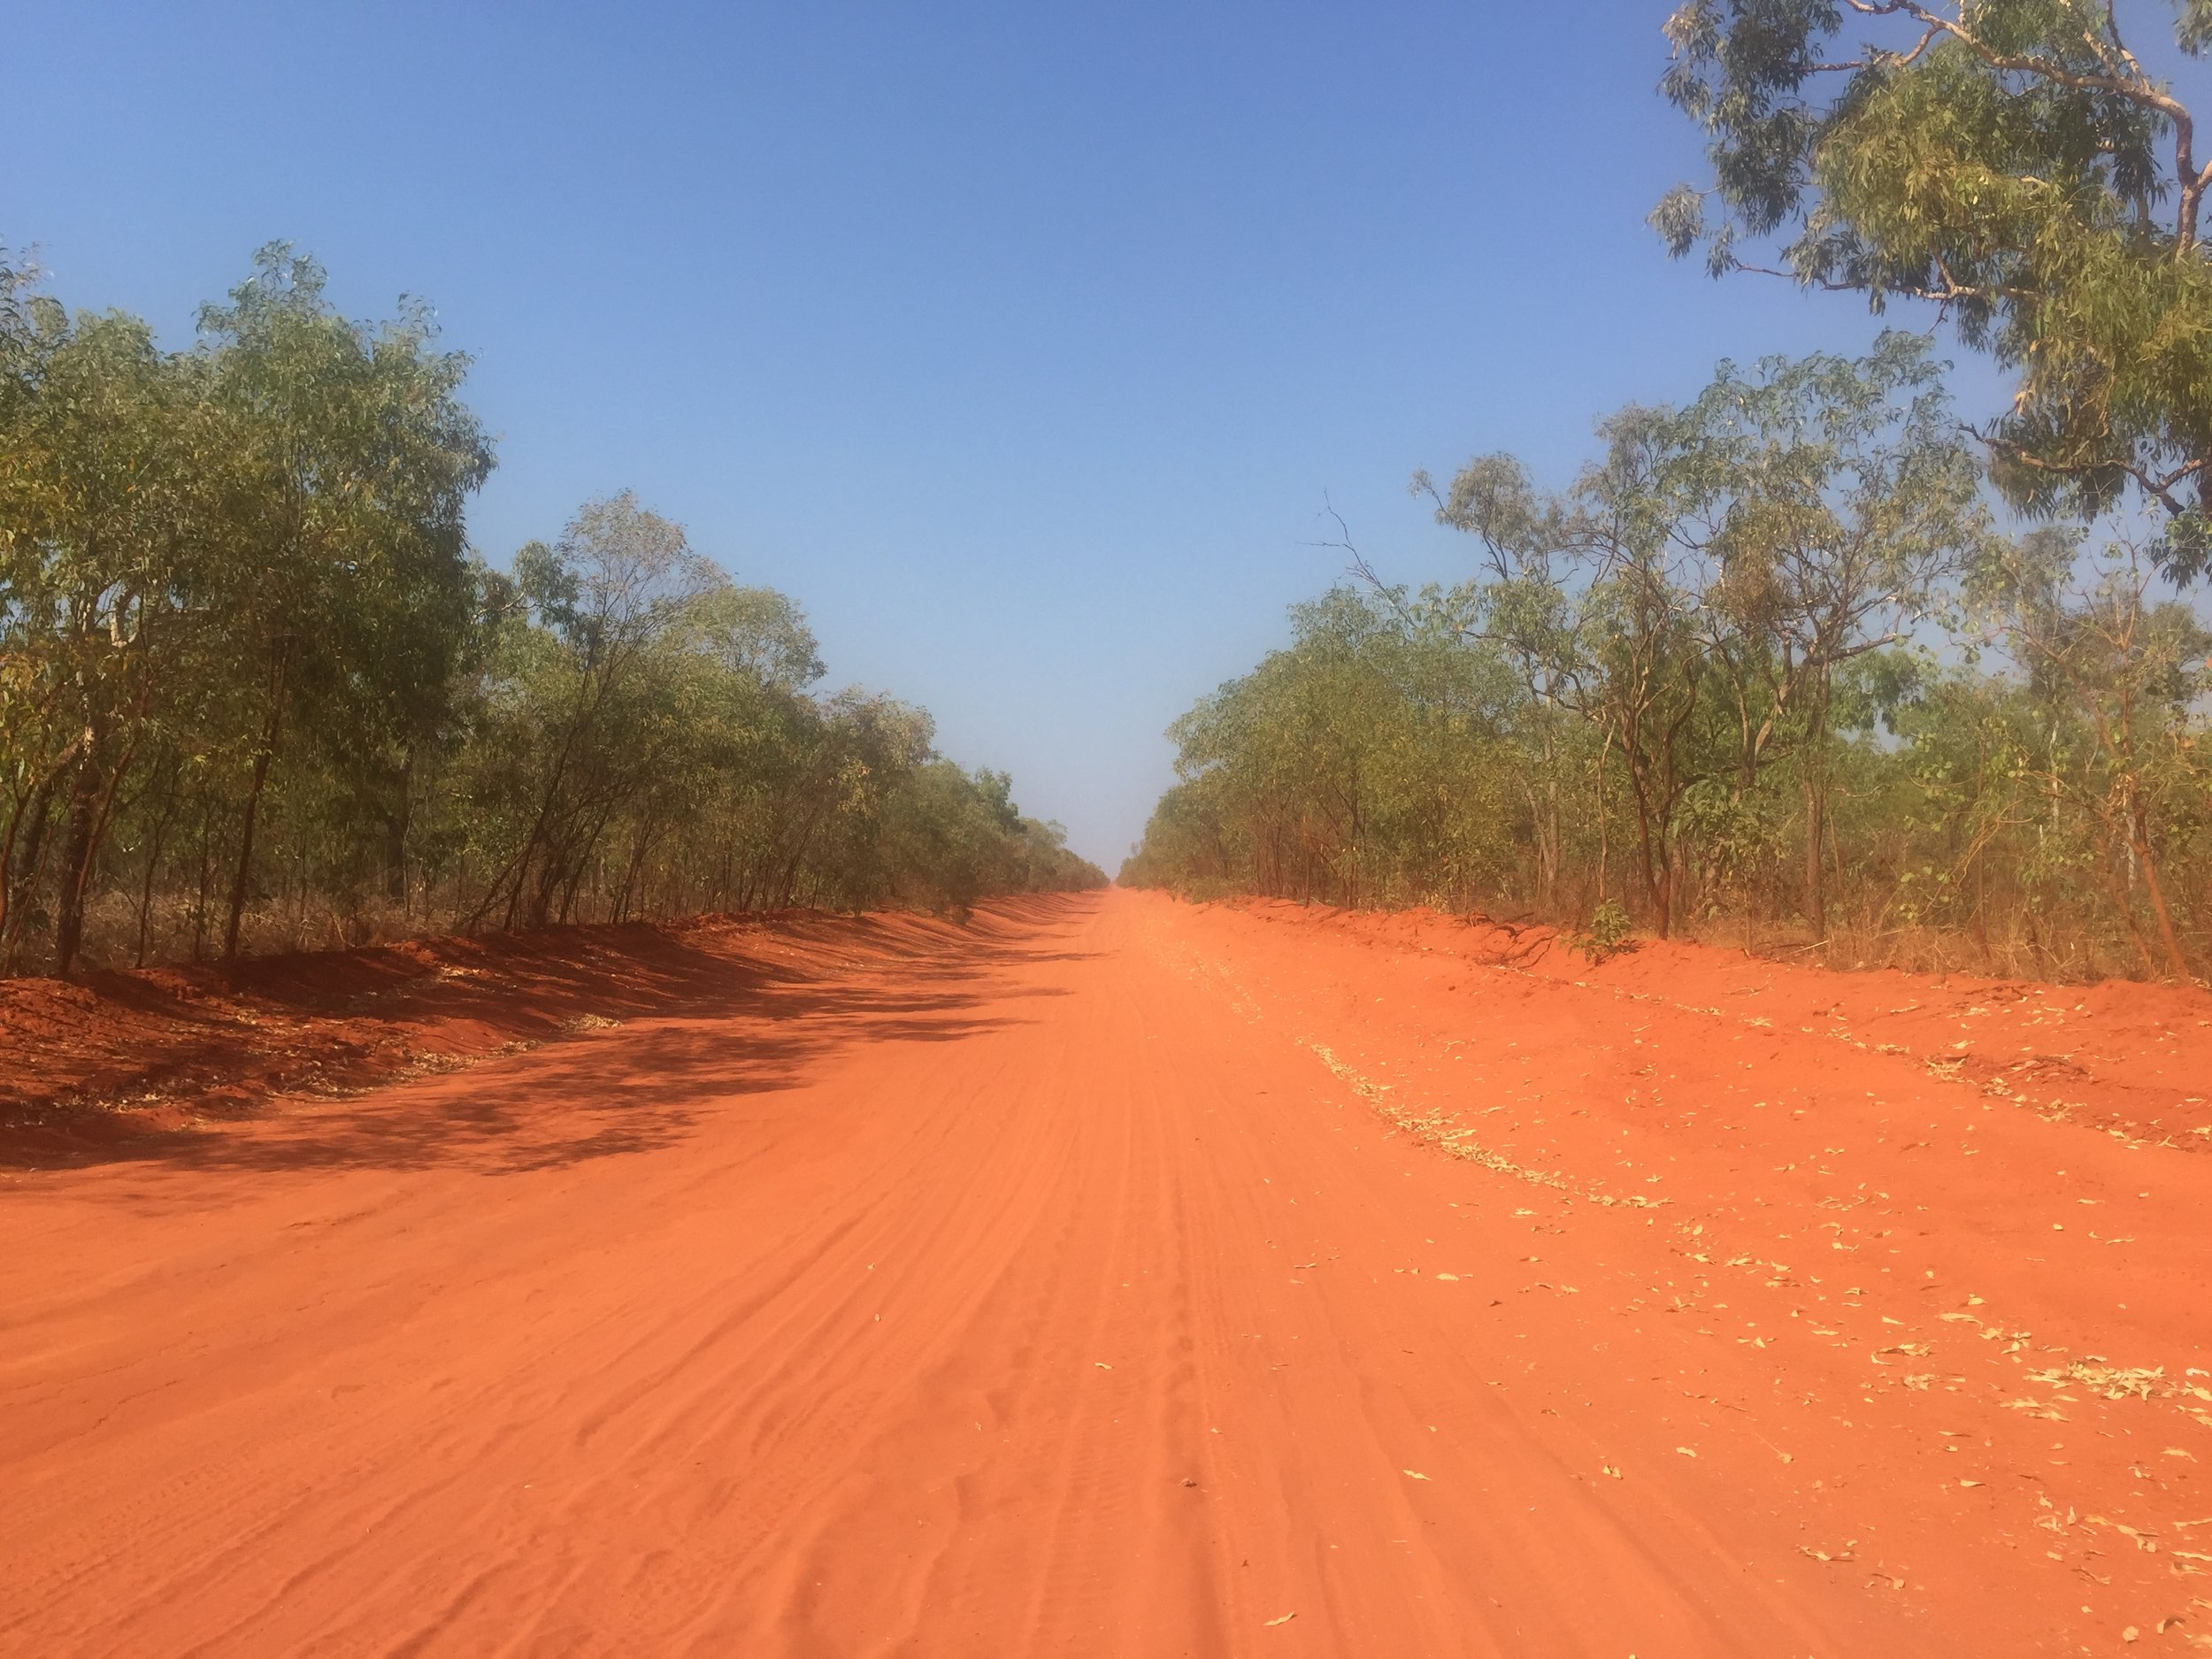 The road to Bardi country from Broome, West Kimberley region of WA.